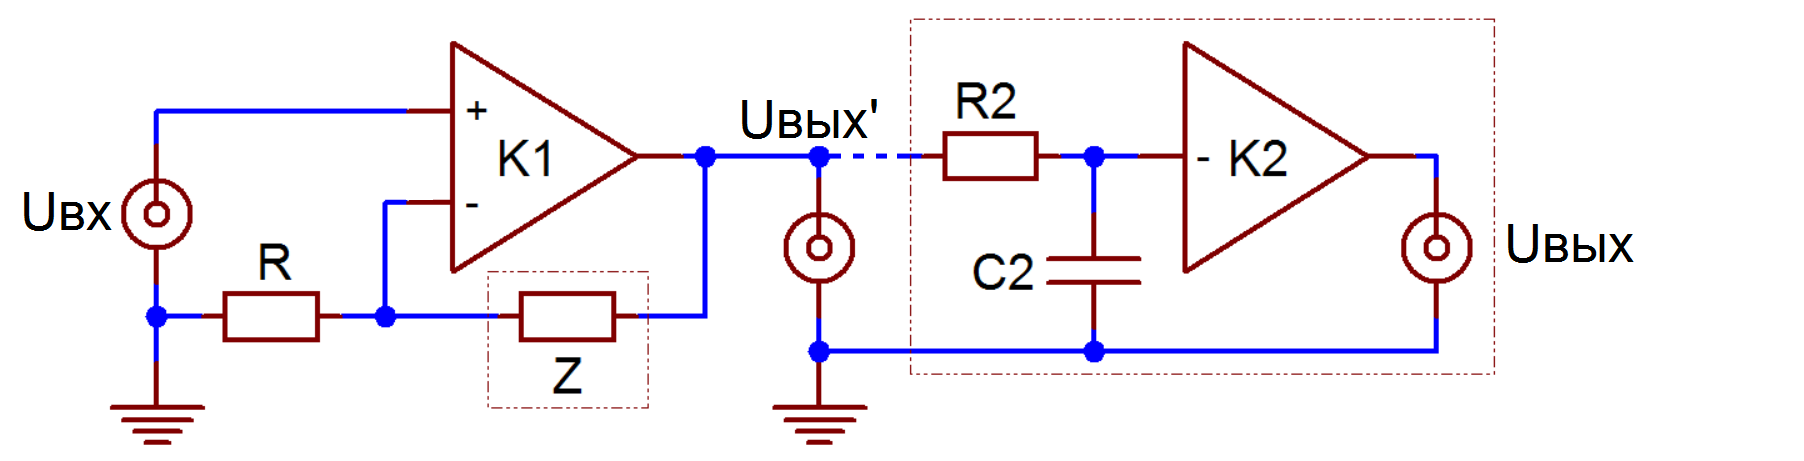 File:Phono stage topologies A1 active,series feedback.png.